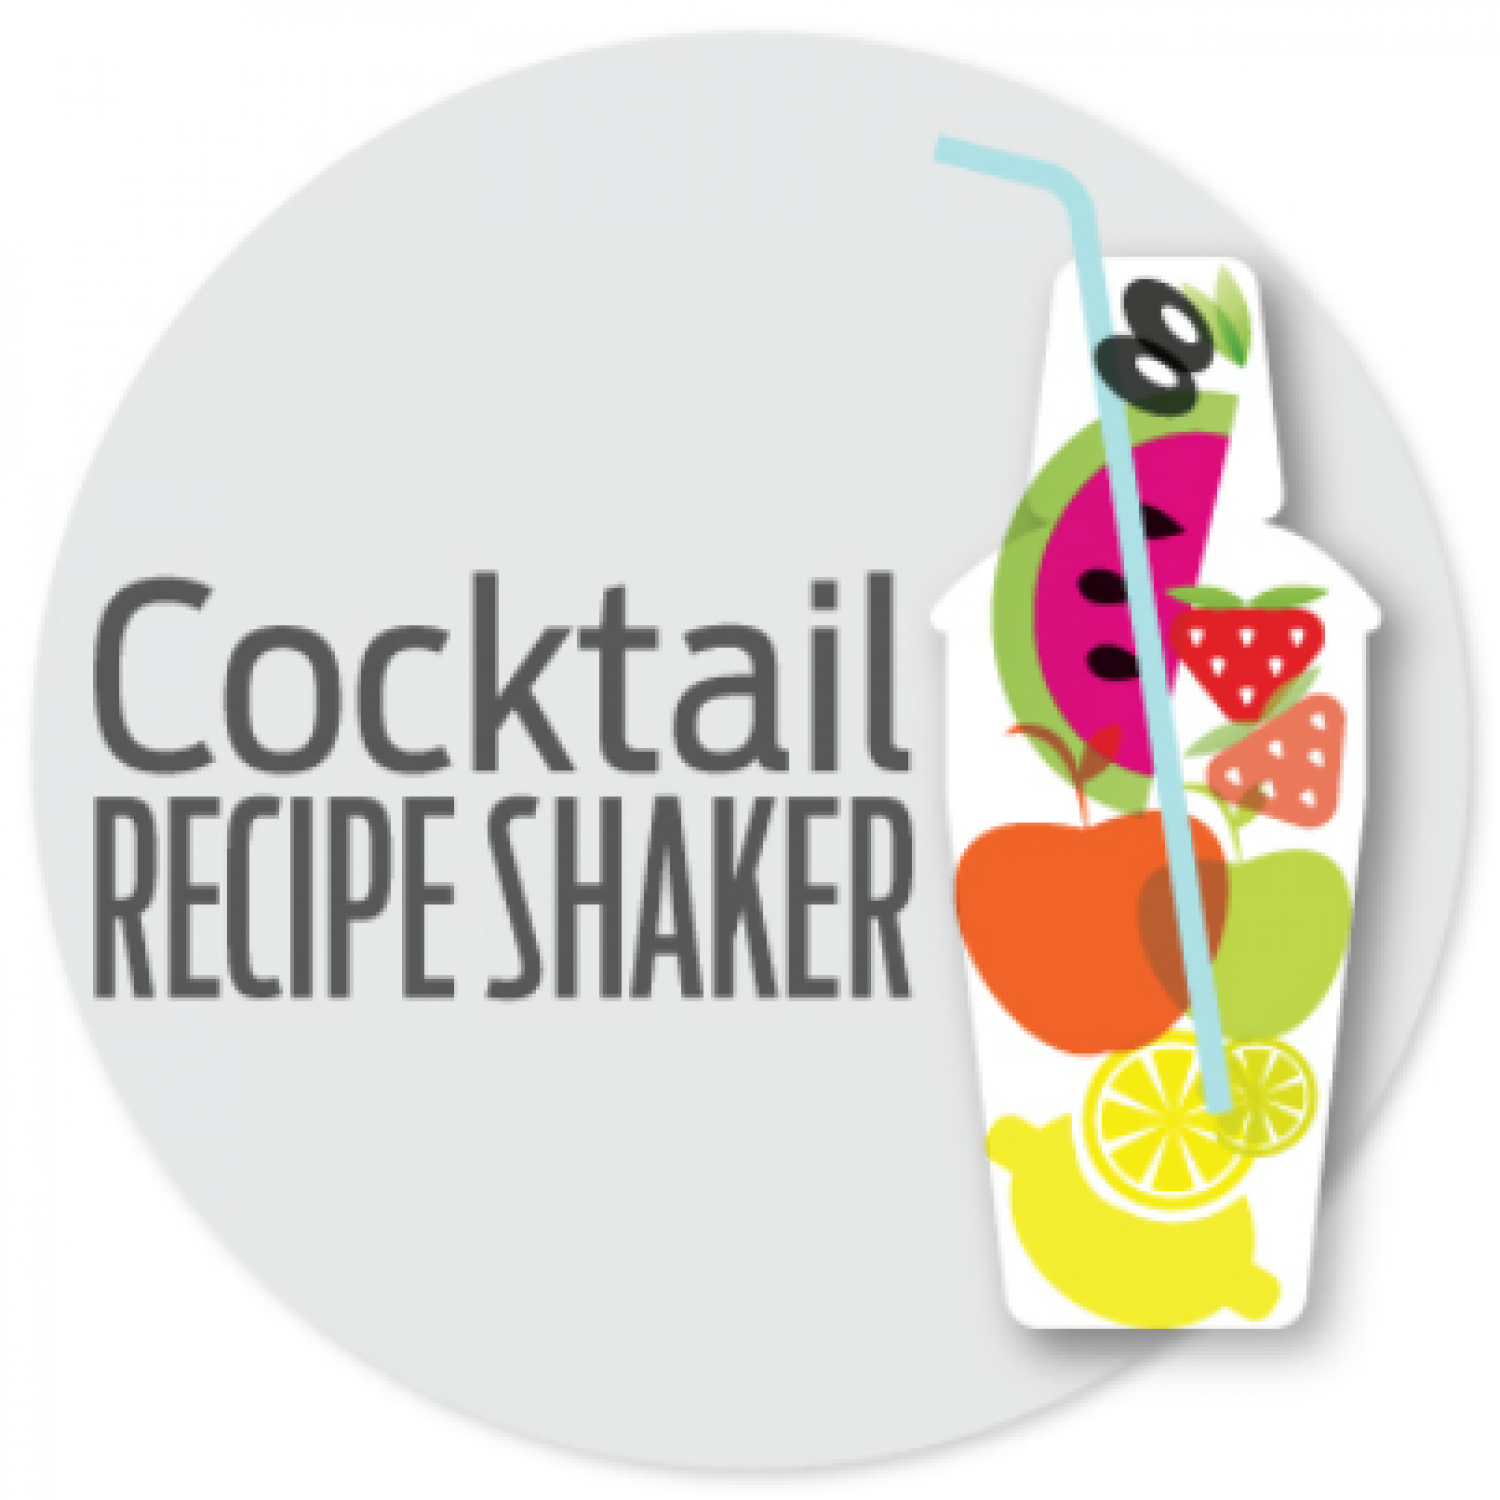 Cocktail Recipe Shaker - Mixed Drink Idea Generator Infographic